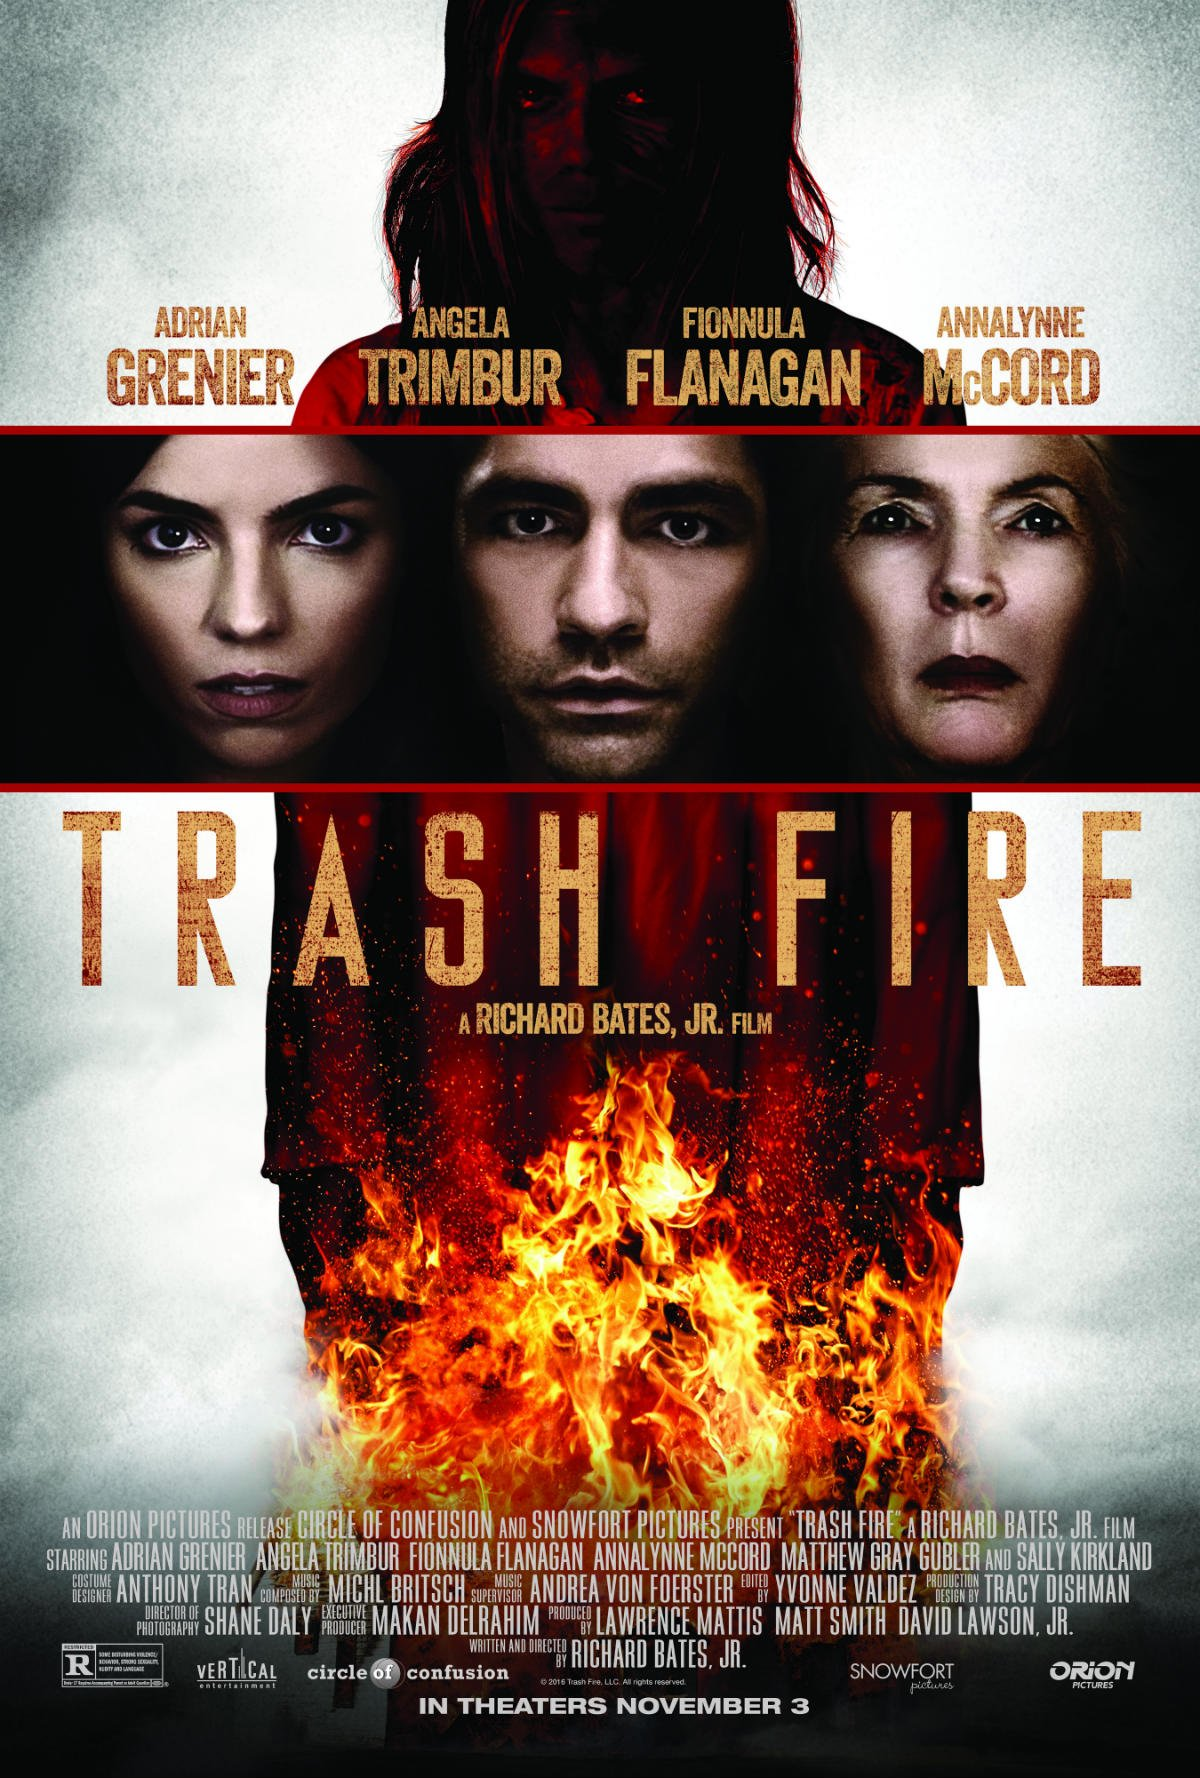 Trash Fire Review